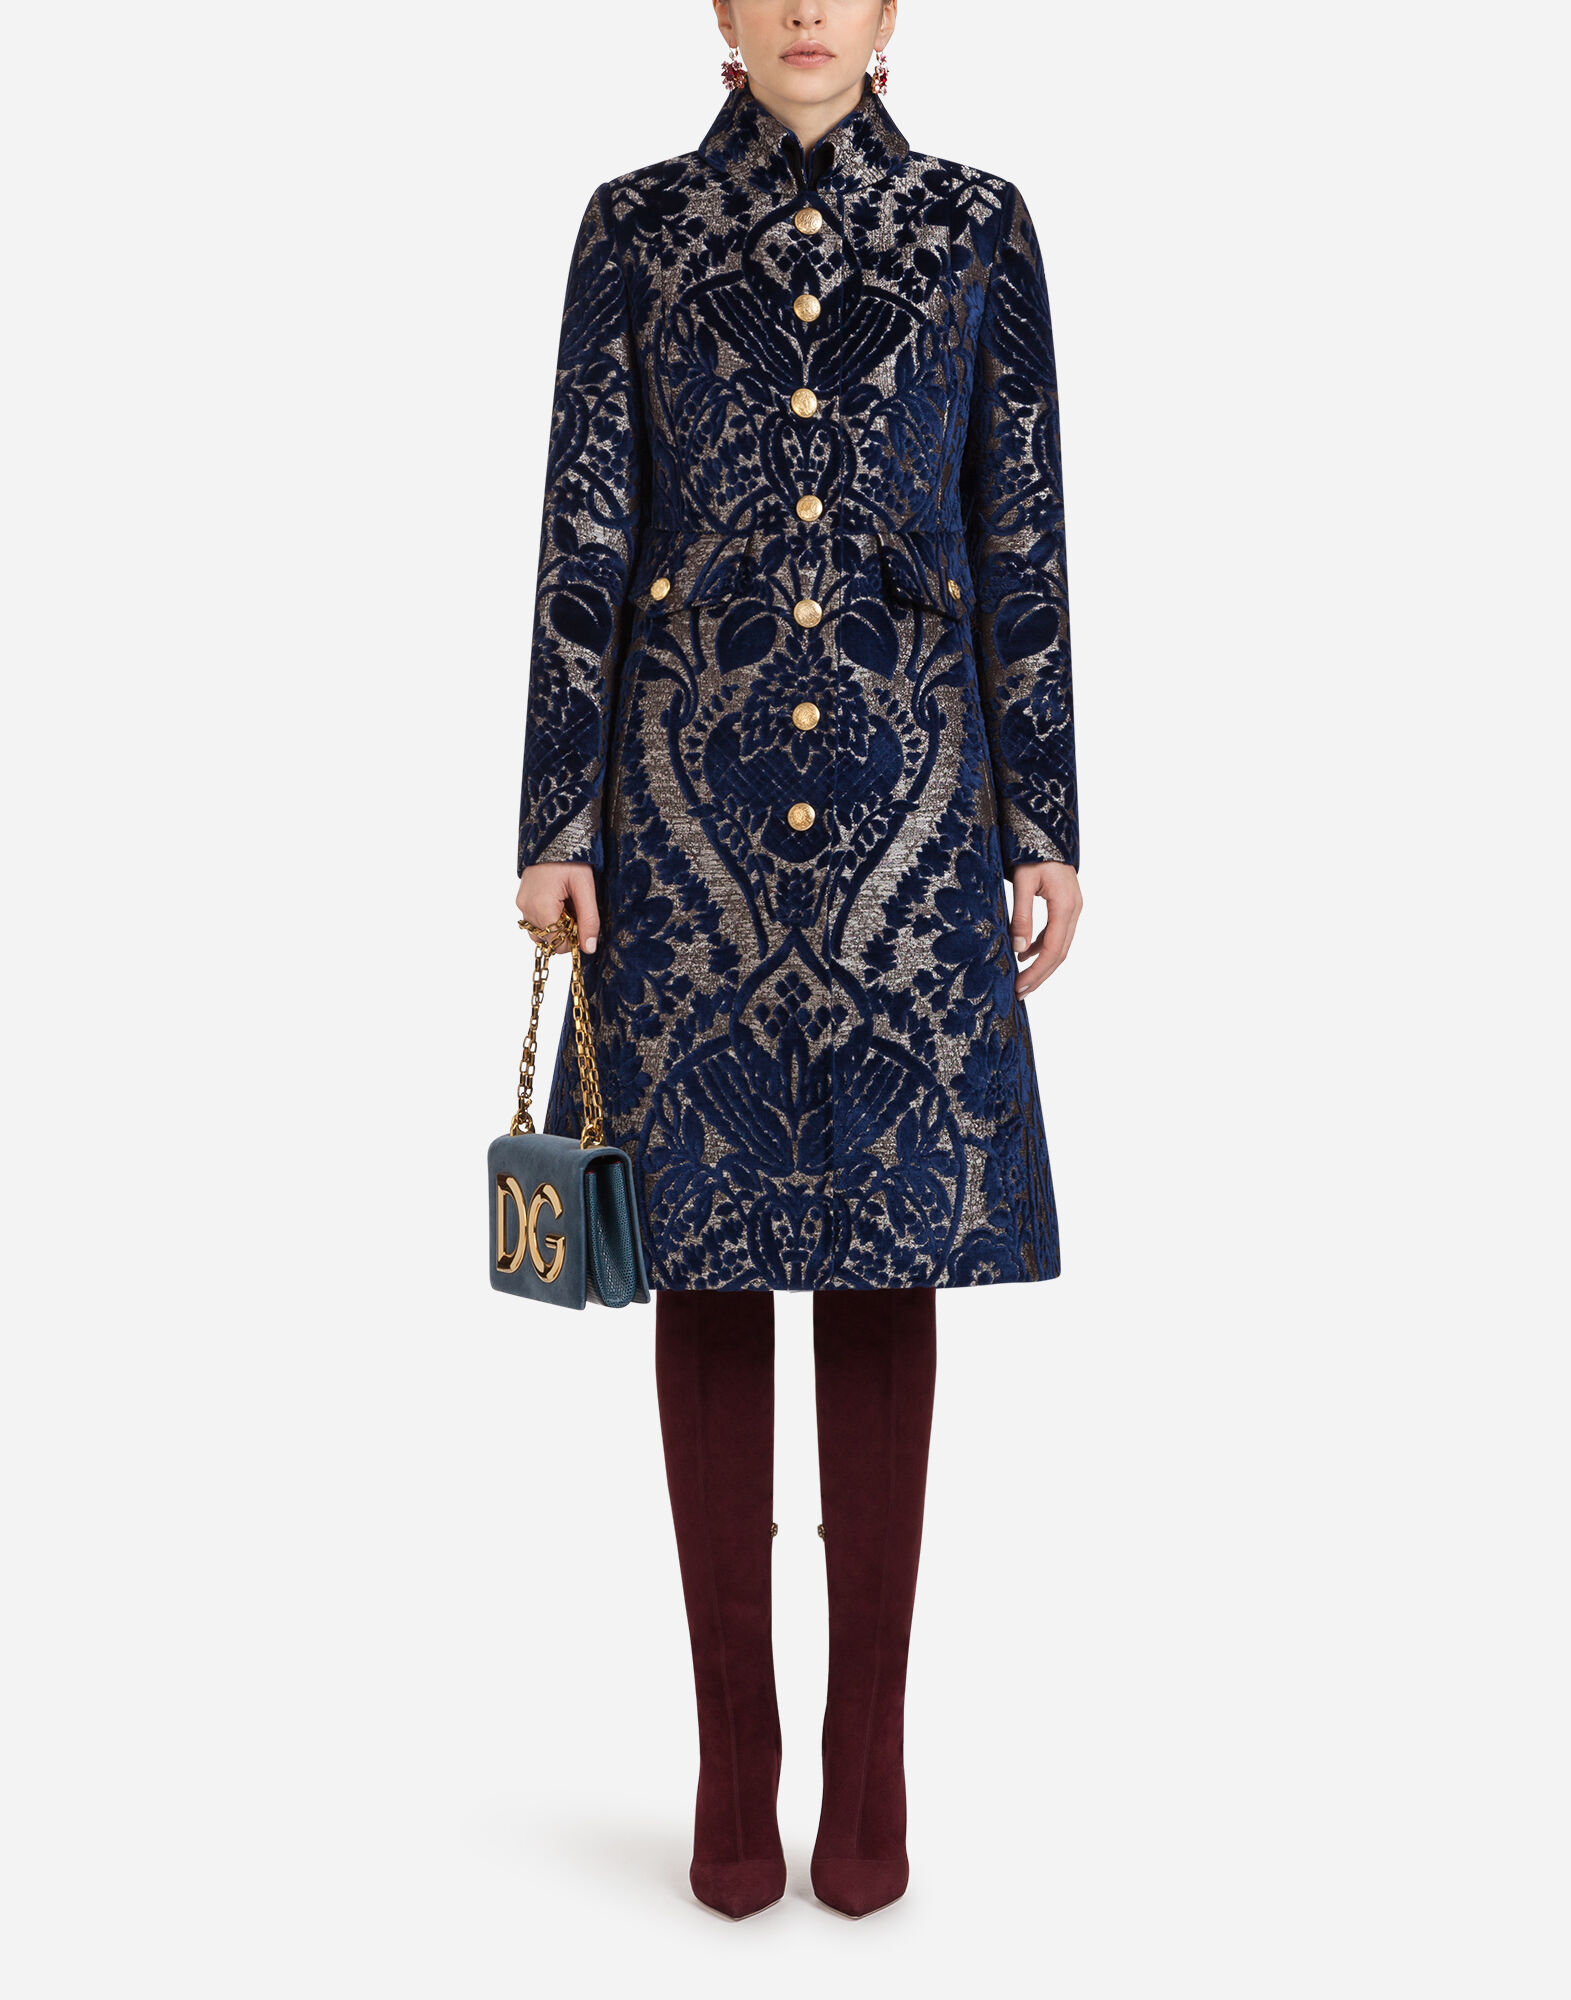 Single-Breasted Button-Front Velvet Damask Jacquard Coat in Multi-Colored